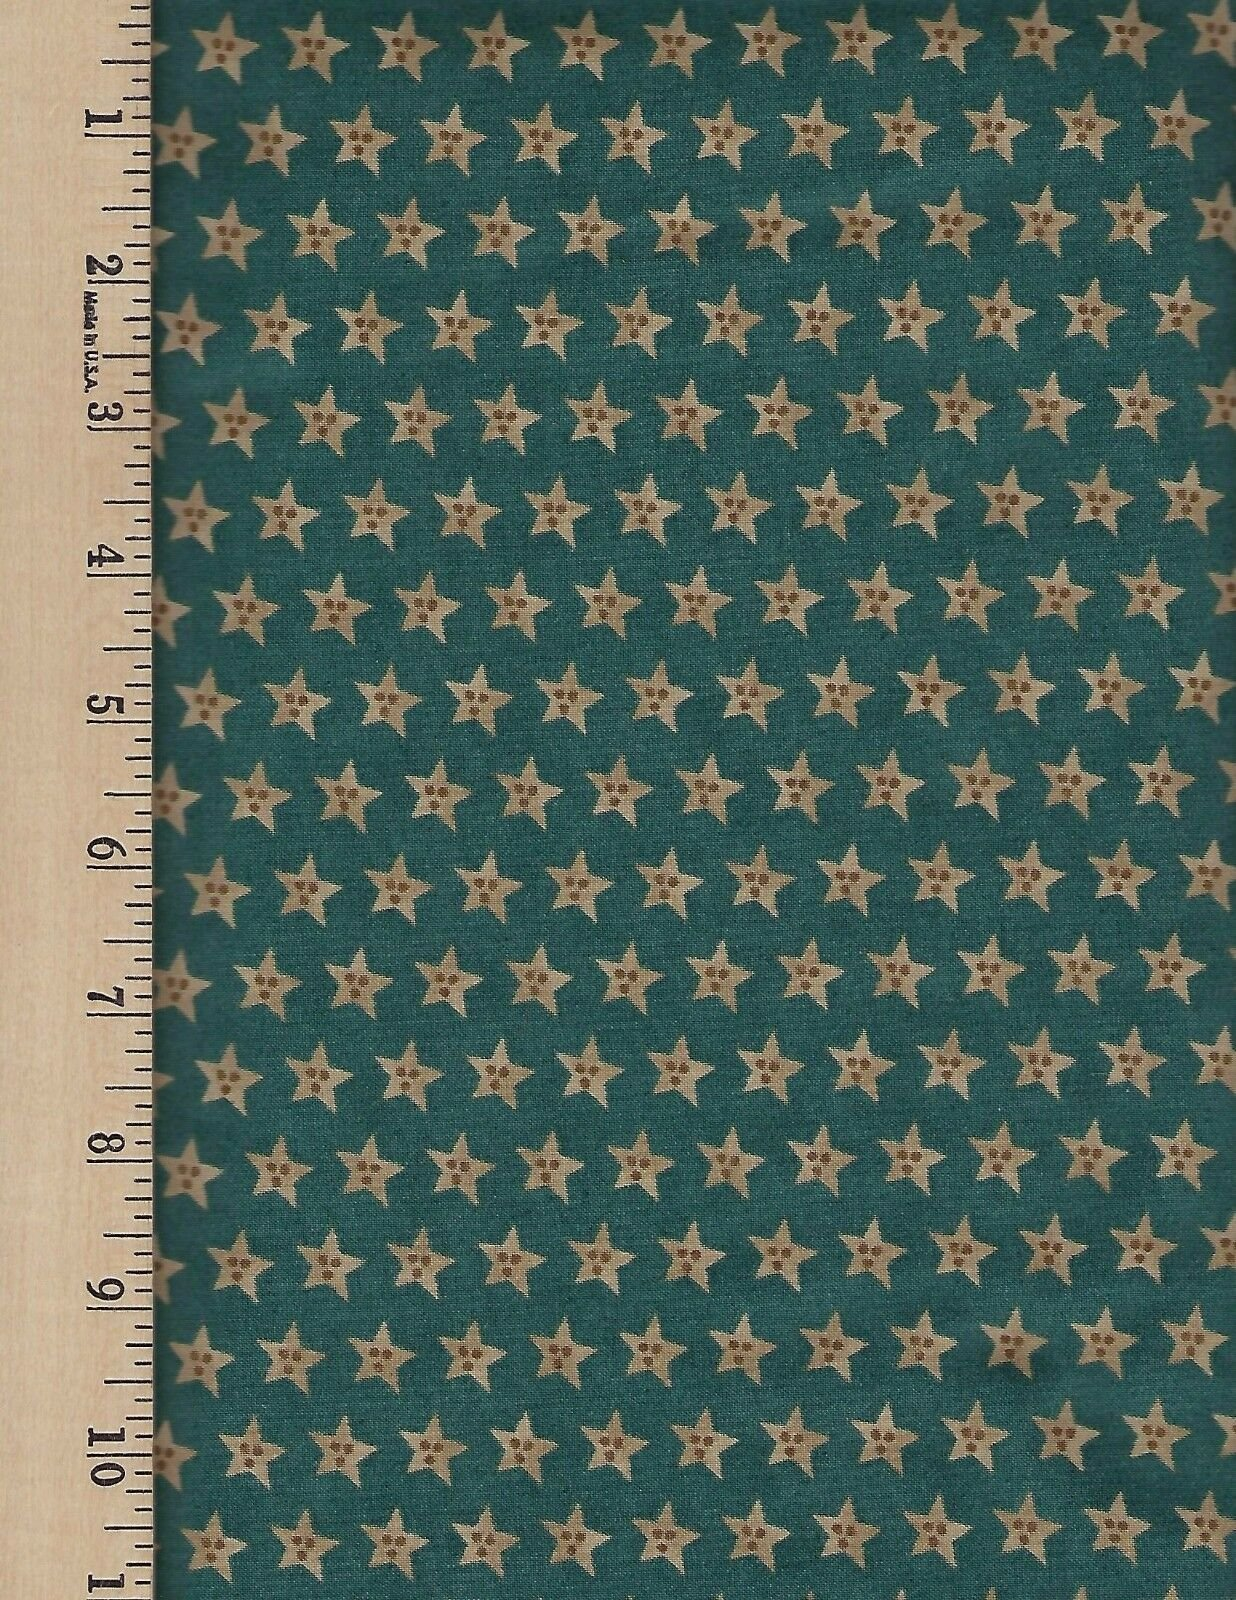 Remembrance Stars Teal 2017 14